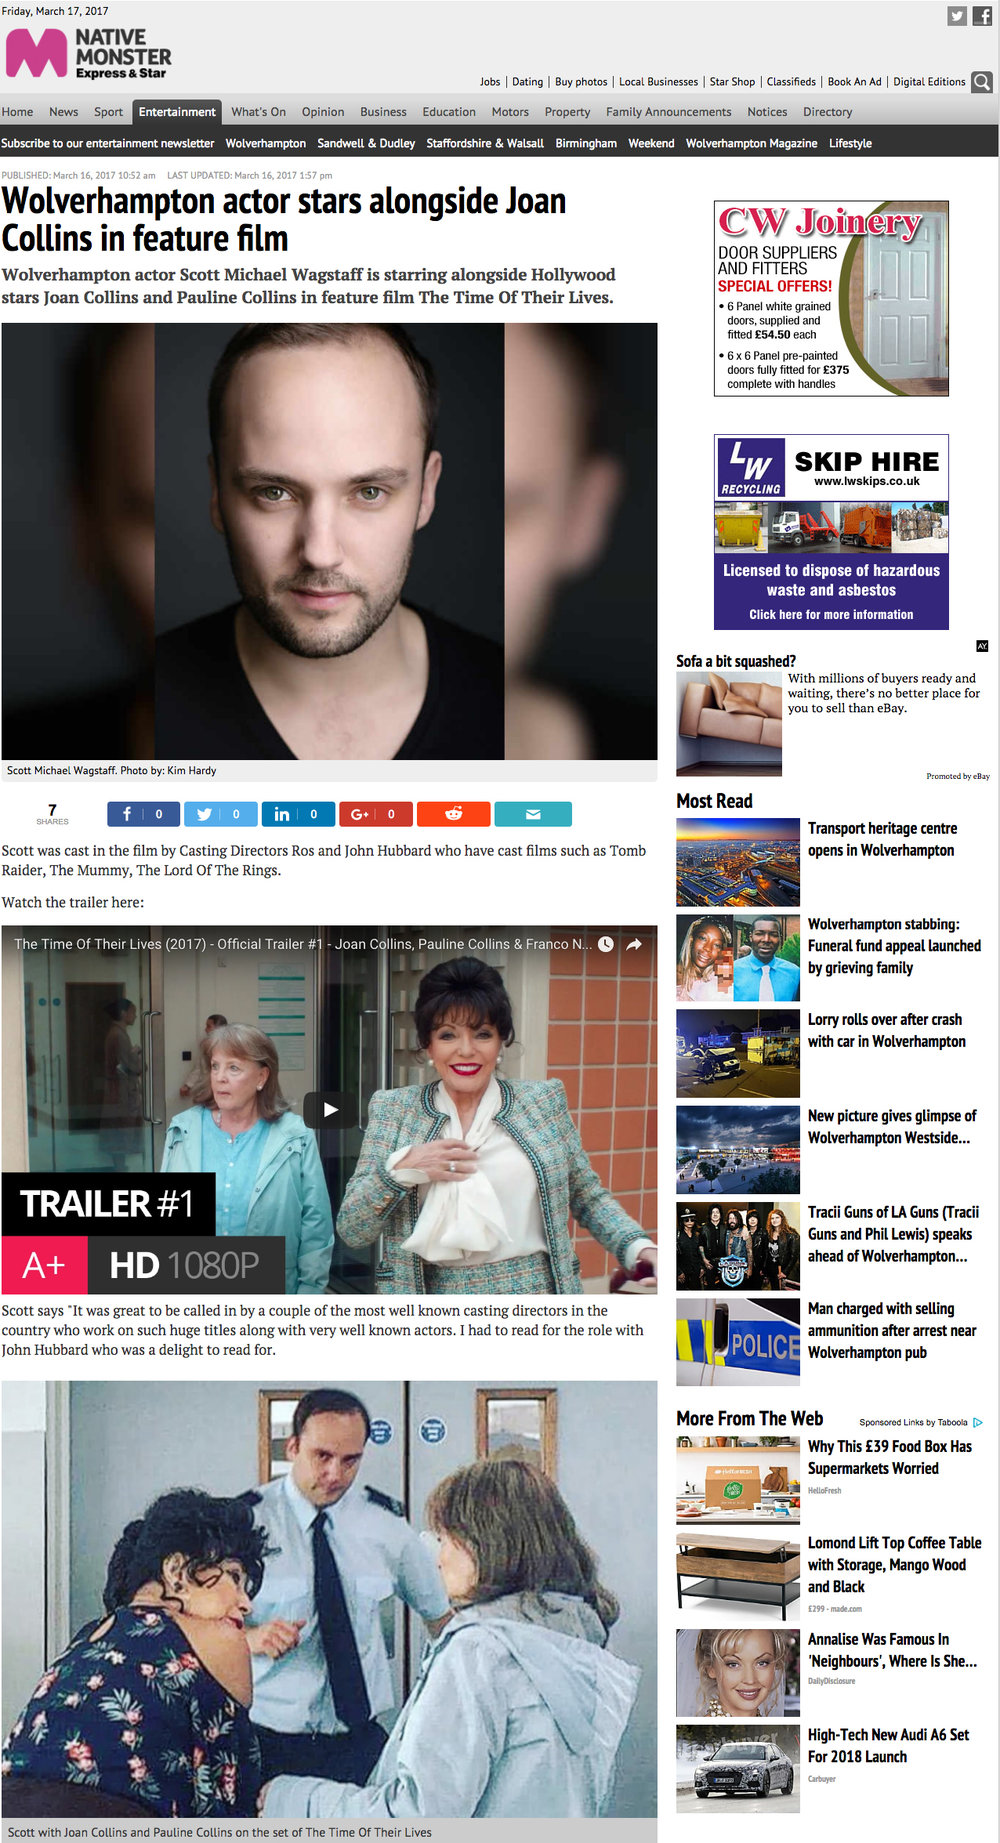 http://www.expressandstar.com/entertainment/2017/03/16/wolverhampton-actor-stars-alongside-joan-collins-in-feature-film/